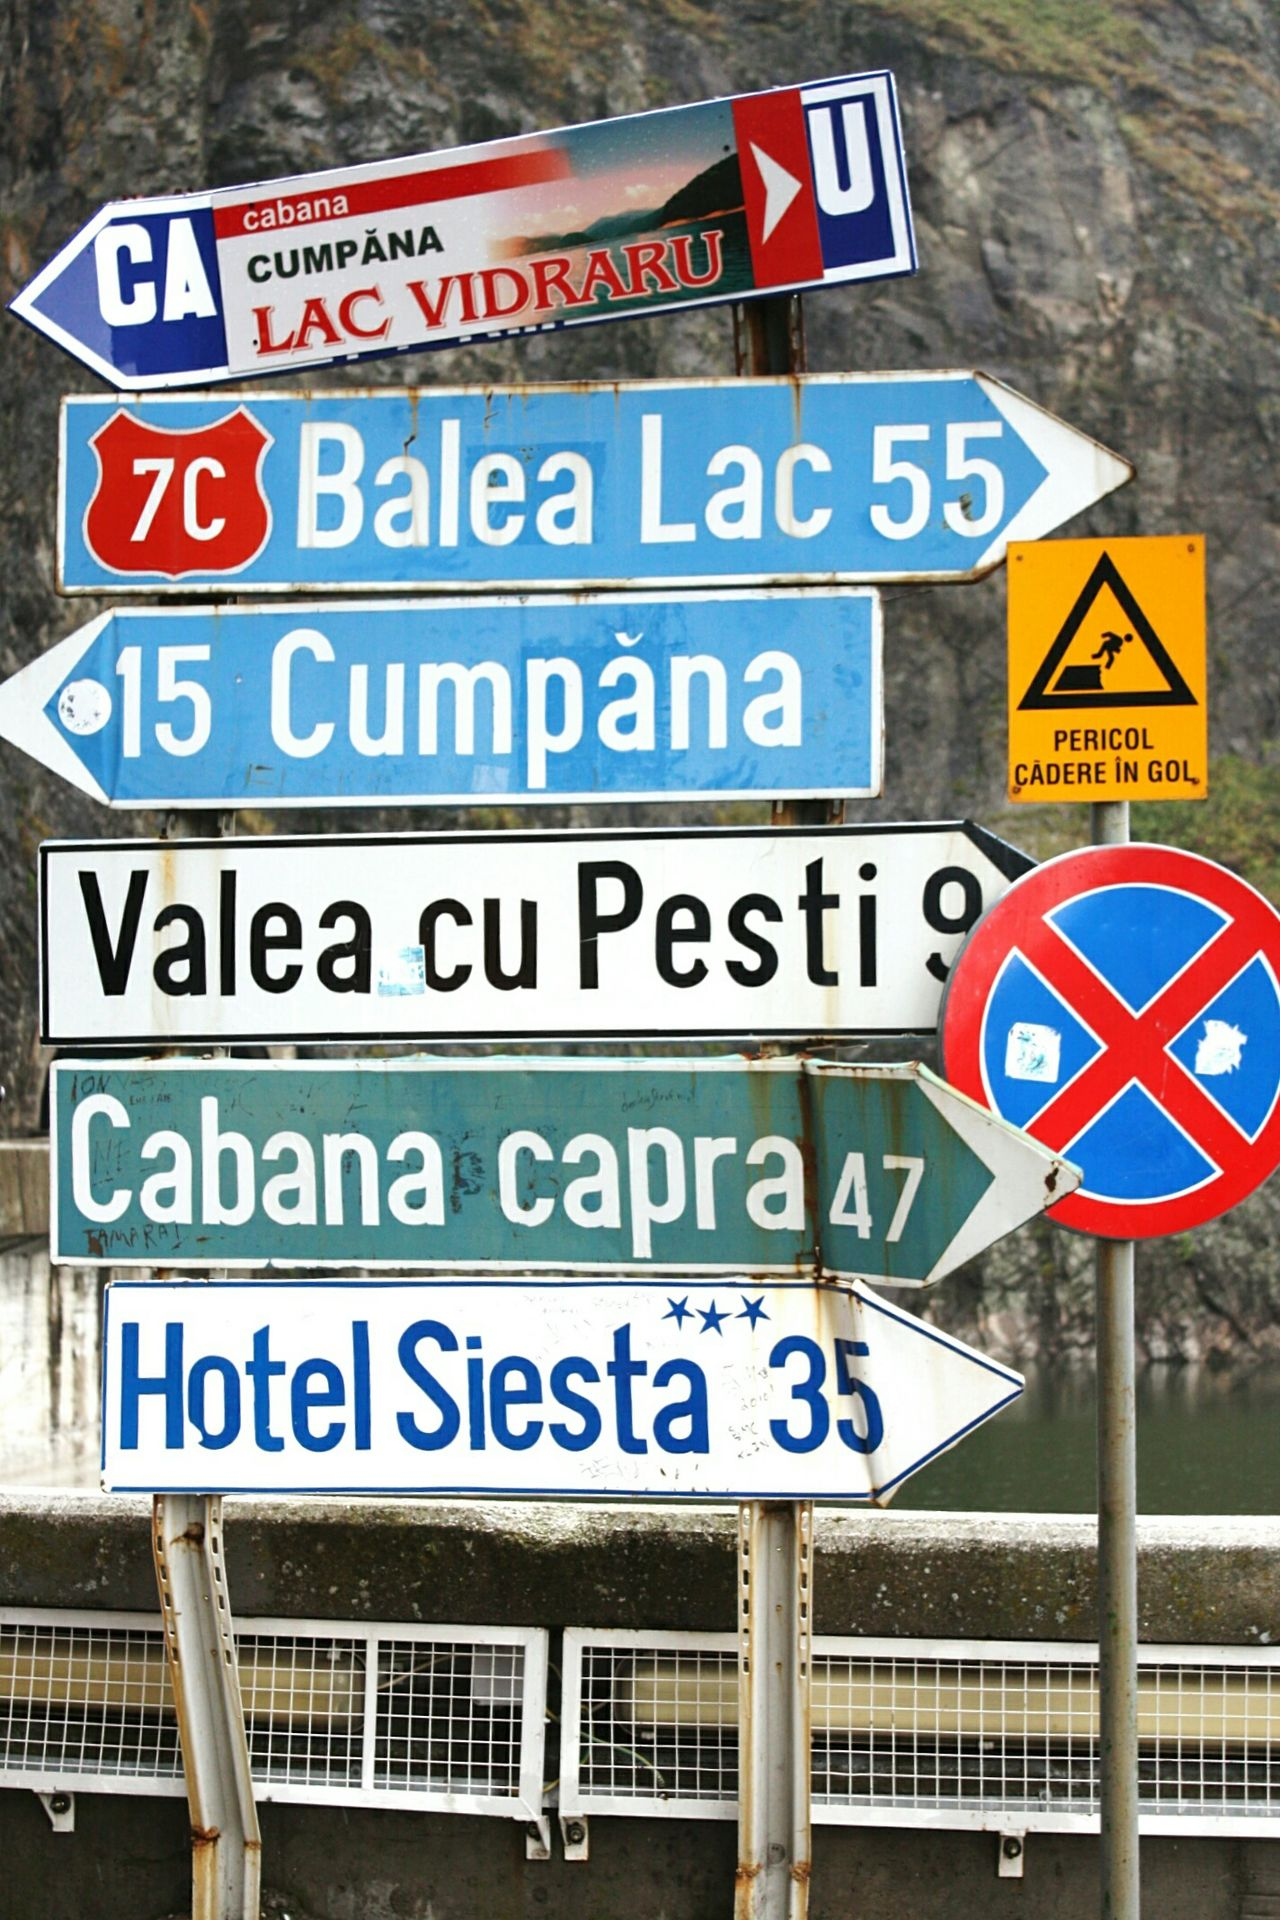 Were do you want to go today? Signs SignSignEverywhereASign Romania EyeEm Best Shots